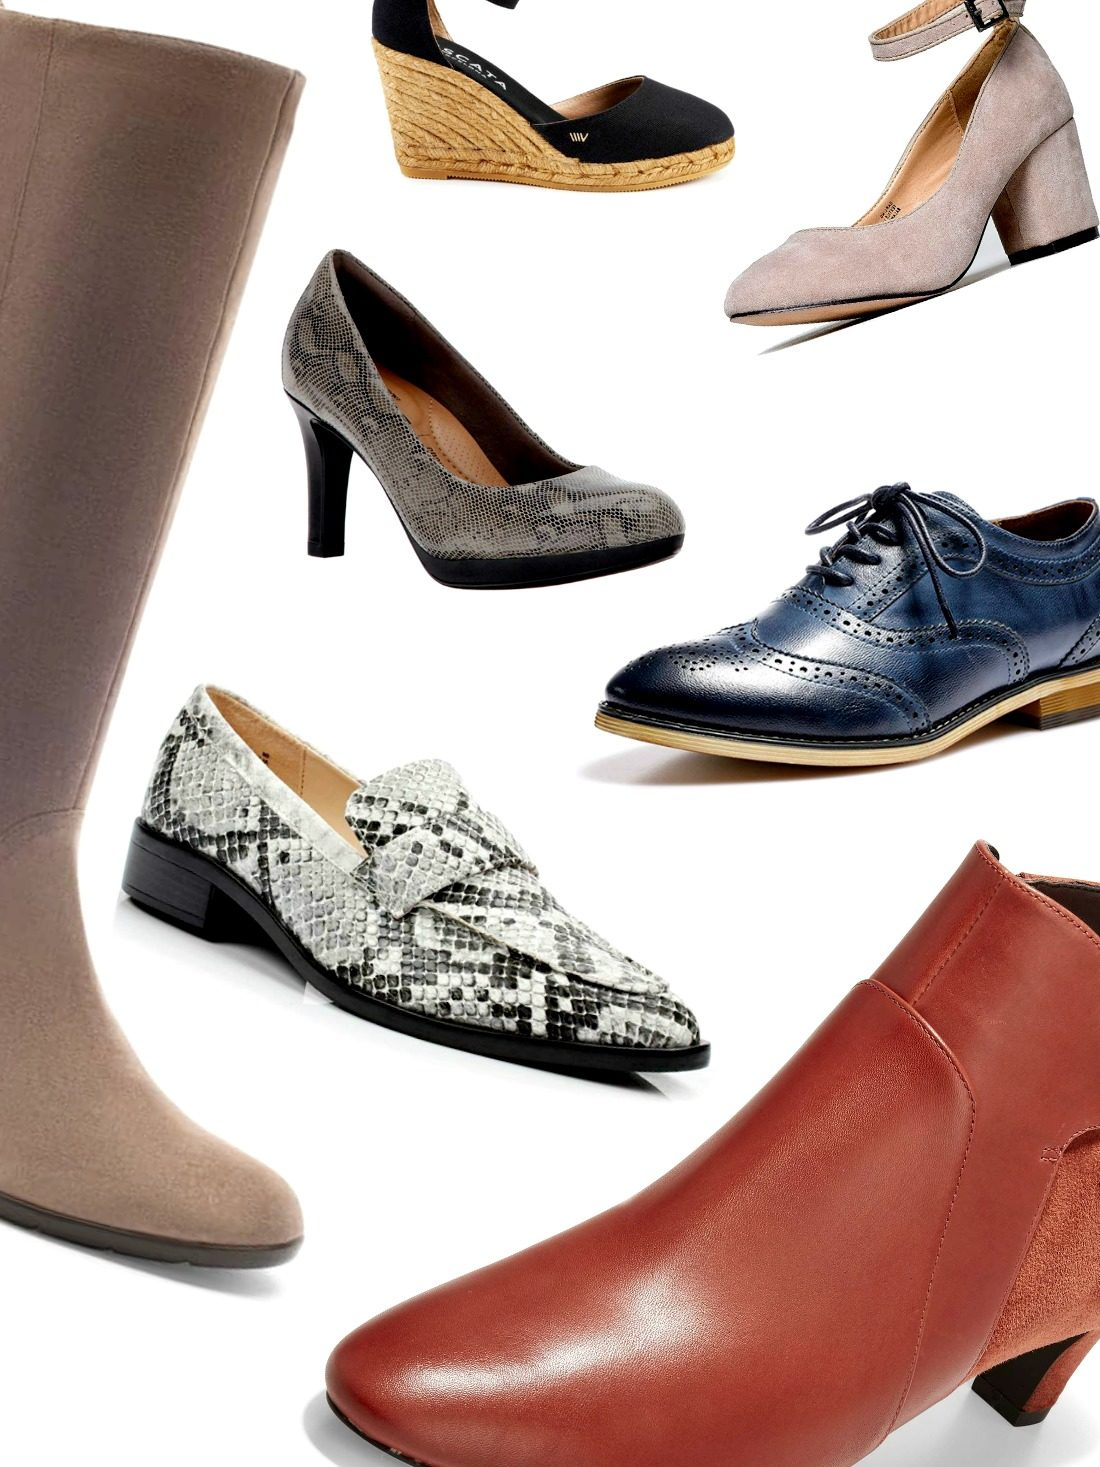 Unlike heels that make you squeal, there are comfortable office shoes for women available, to take on work and everything involved with, determination, style, and a touch of your personality. Check out what those are!